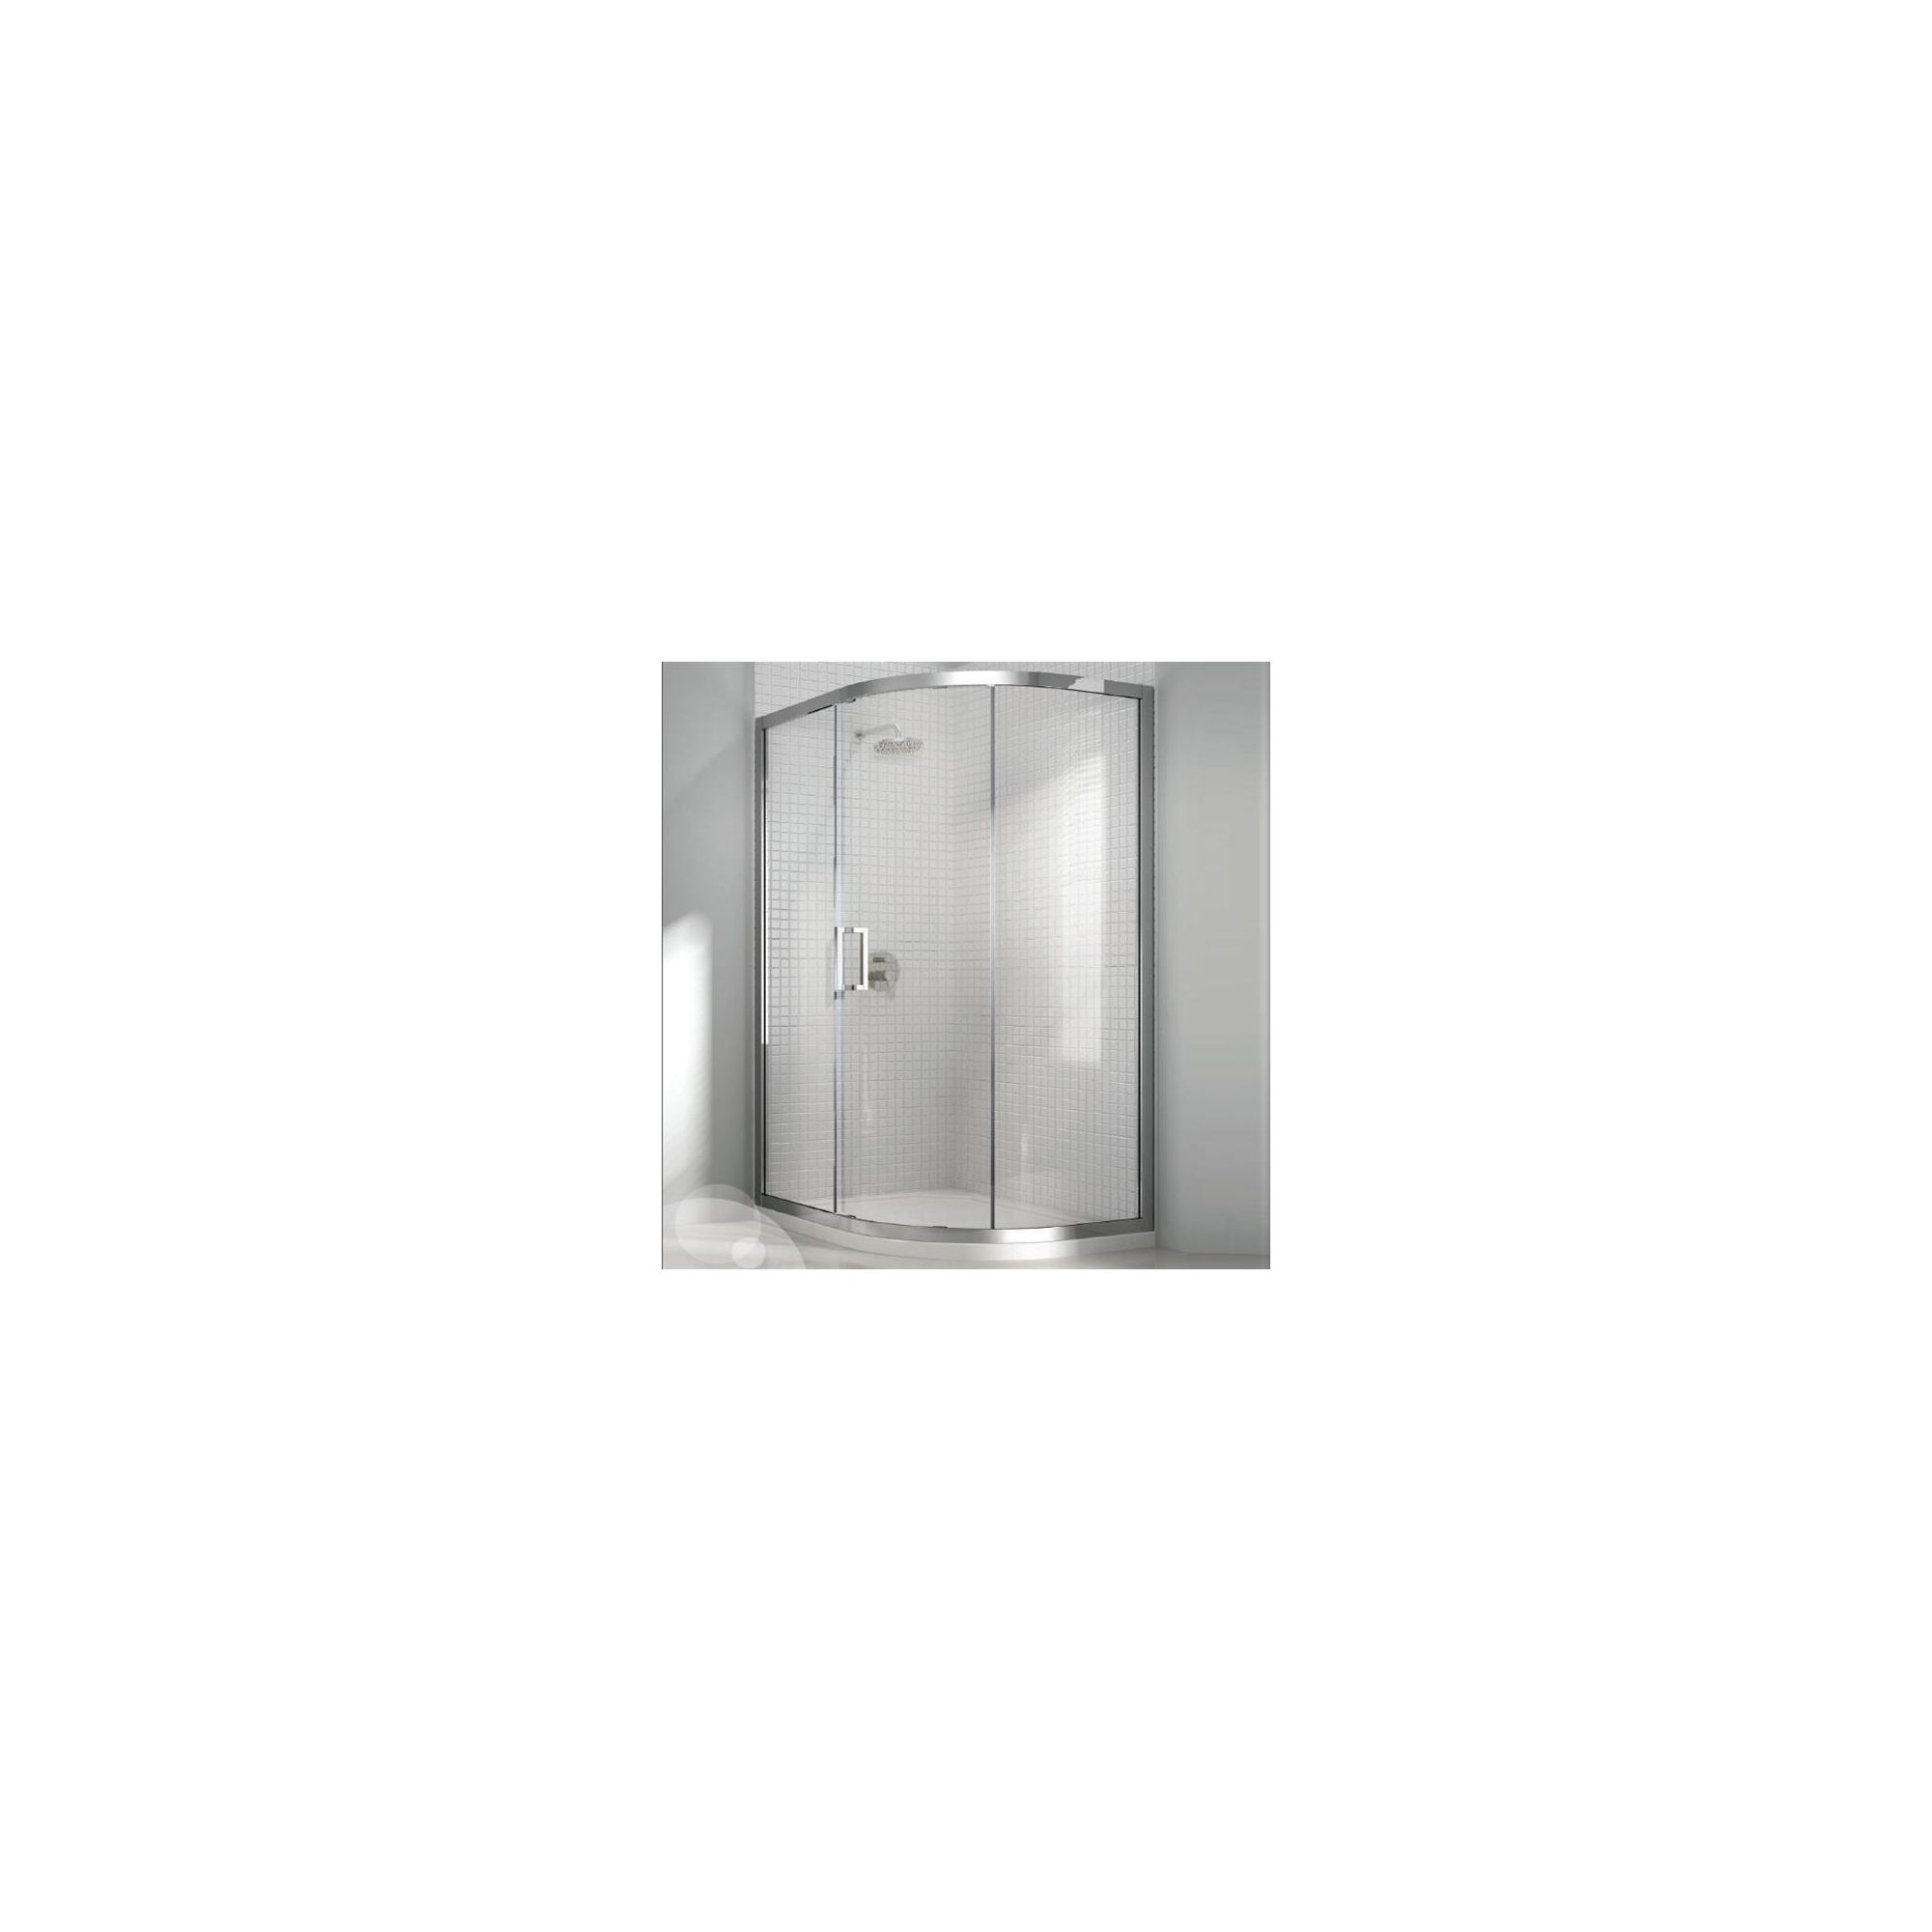 Merlyn Vivid Eight Offset Quadrant Shower Enclosure, 1000mm x 800mm, Right Handed, Low Profile Tray, 8mm Glass at Tesco Direct